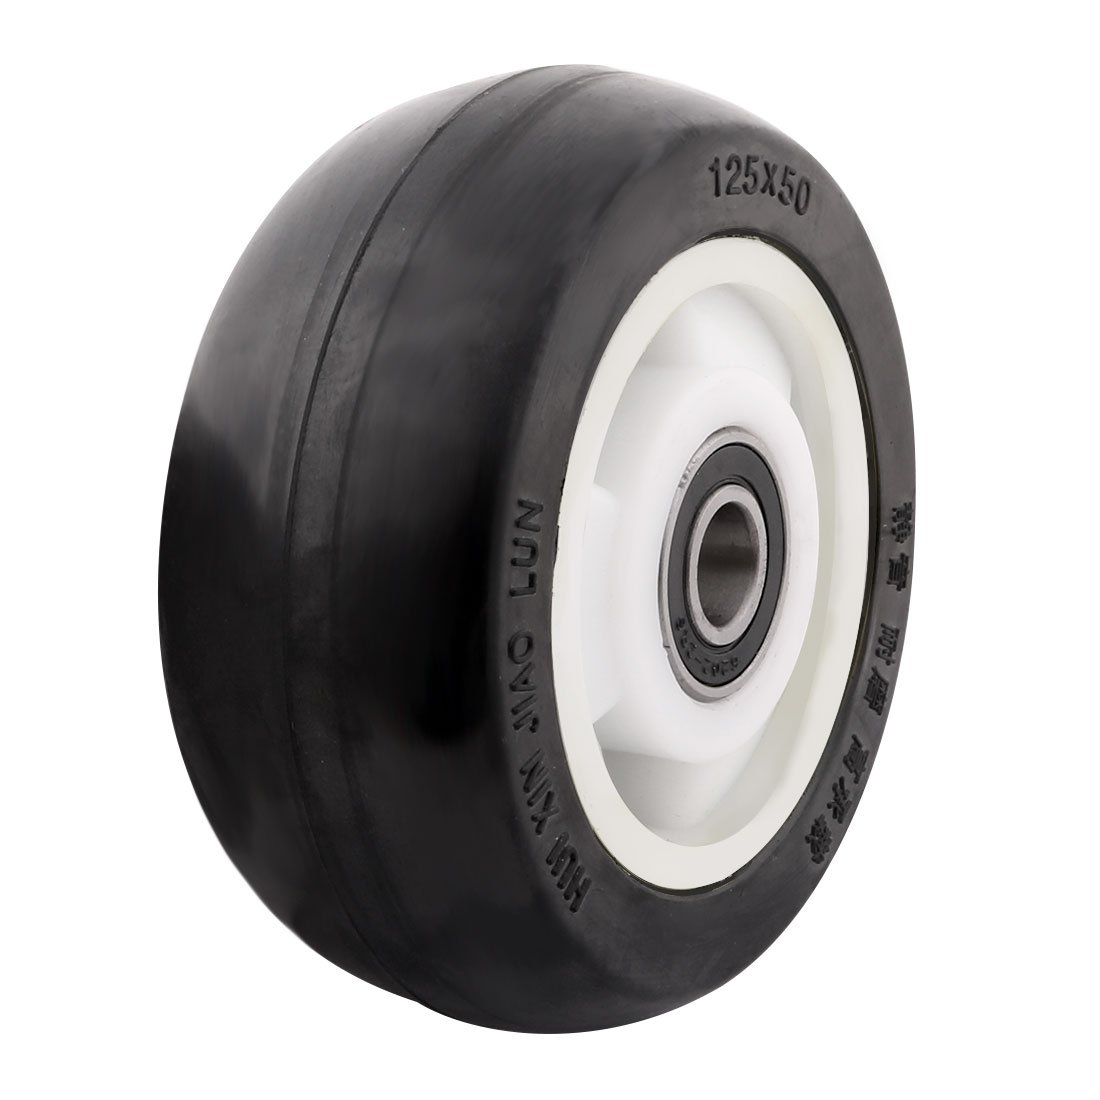 uxcell 5'' Rubber on Hard plastic Wheel with Bearing, shim, and Bushing, Replacement For Carts, Furniture, Dolly, Workbench, Trolley, Black, Wheel Only